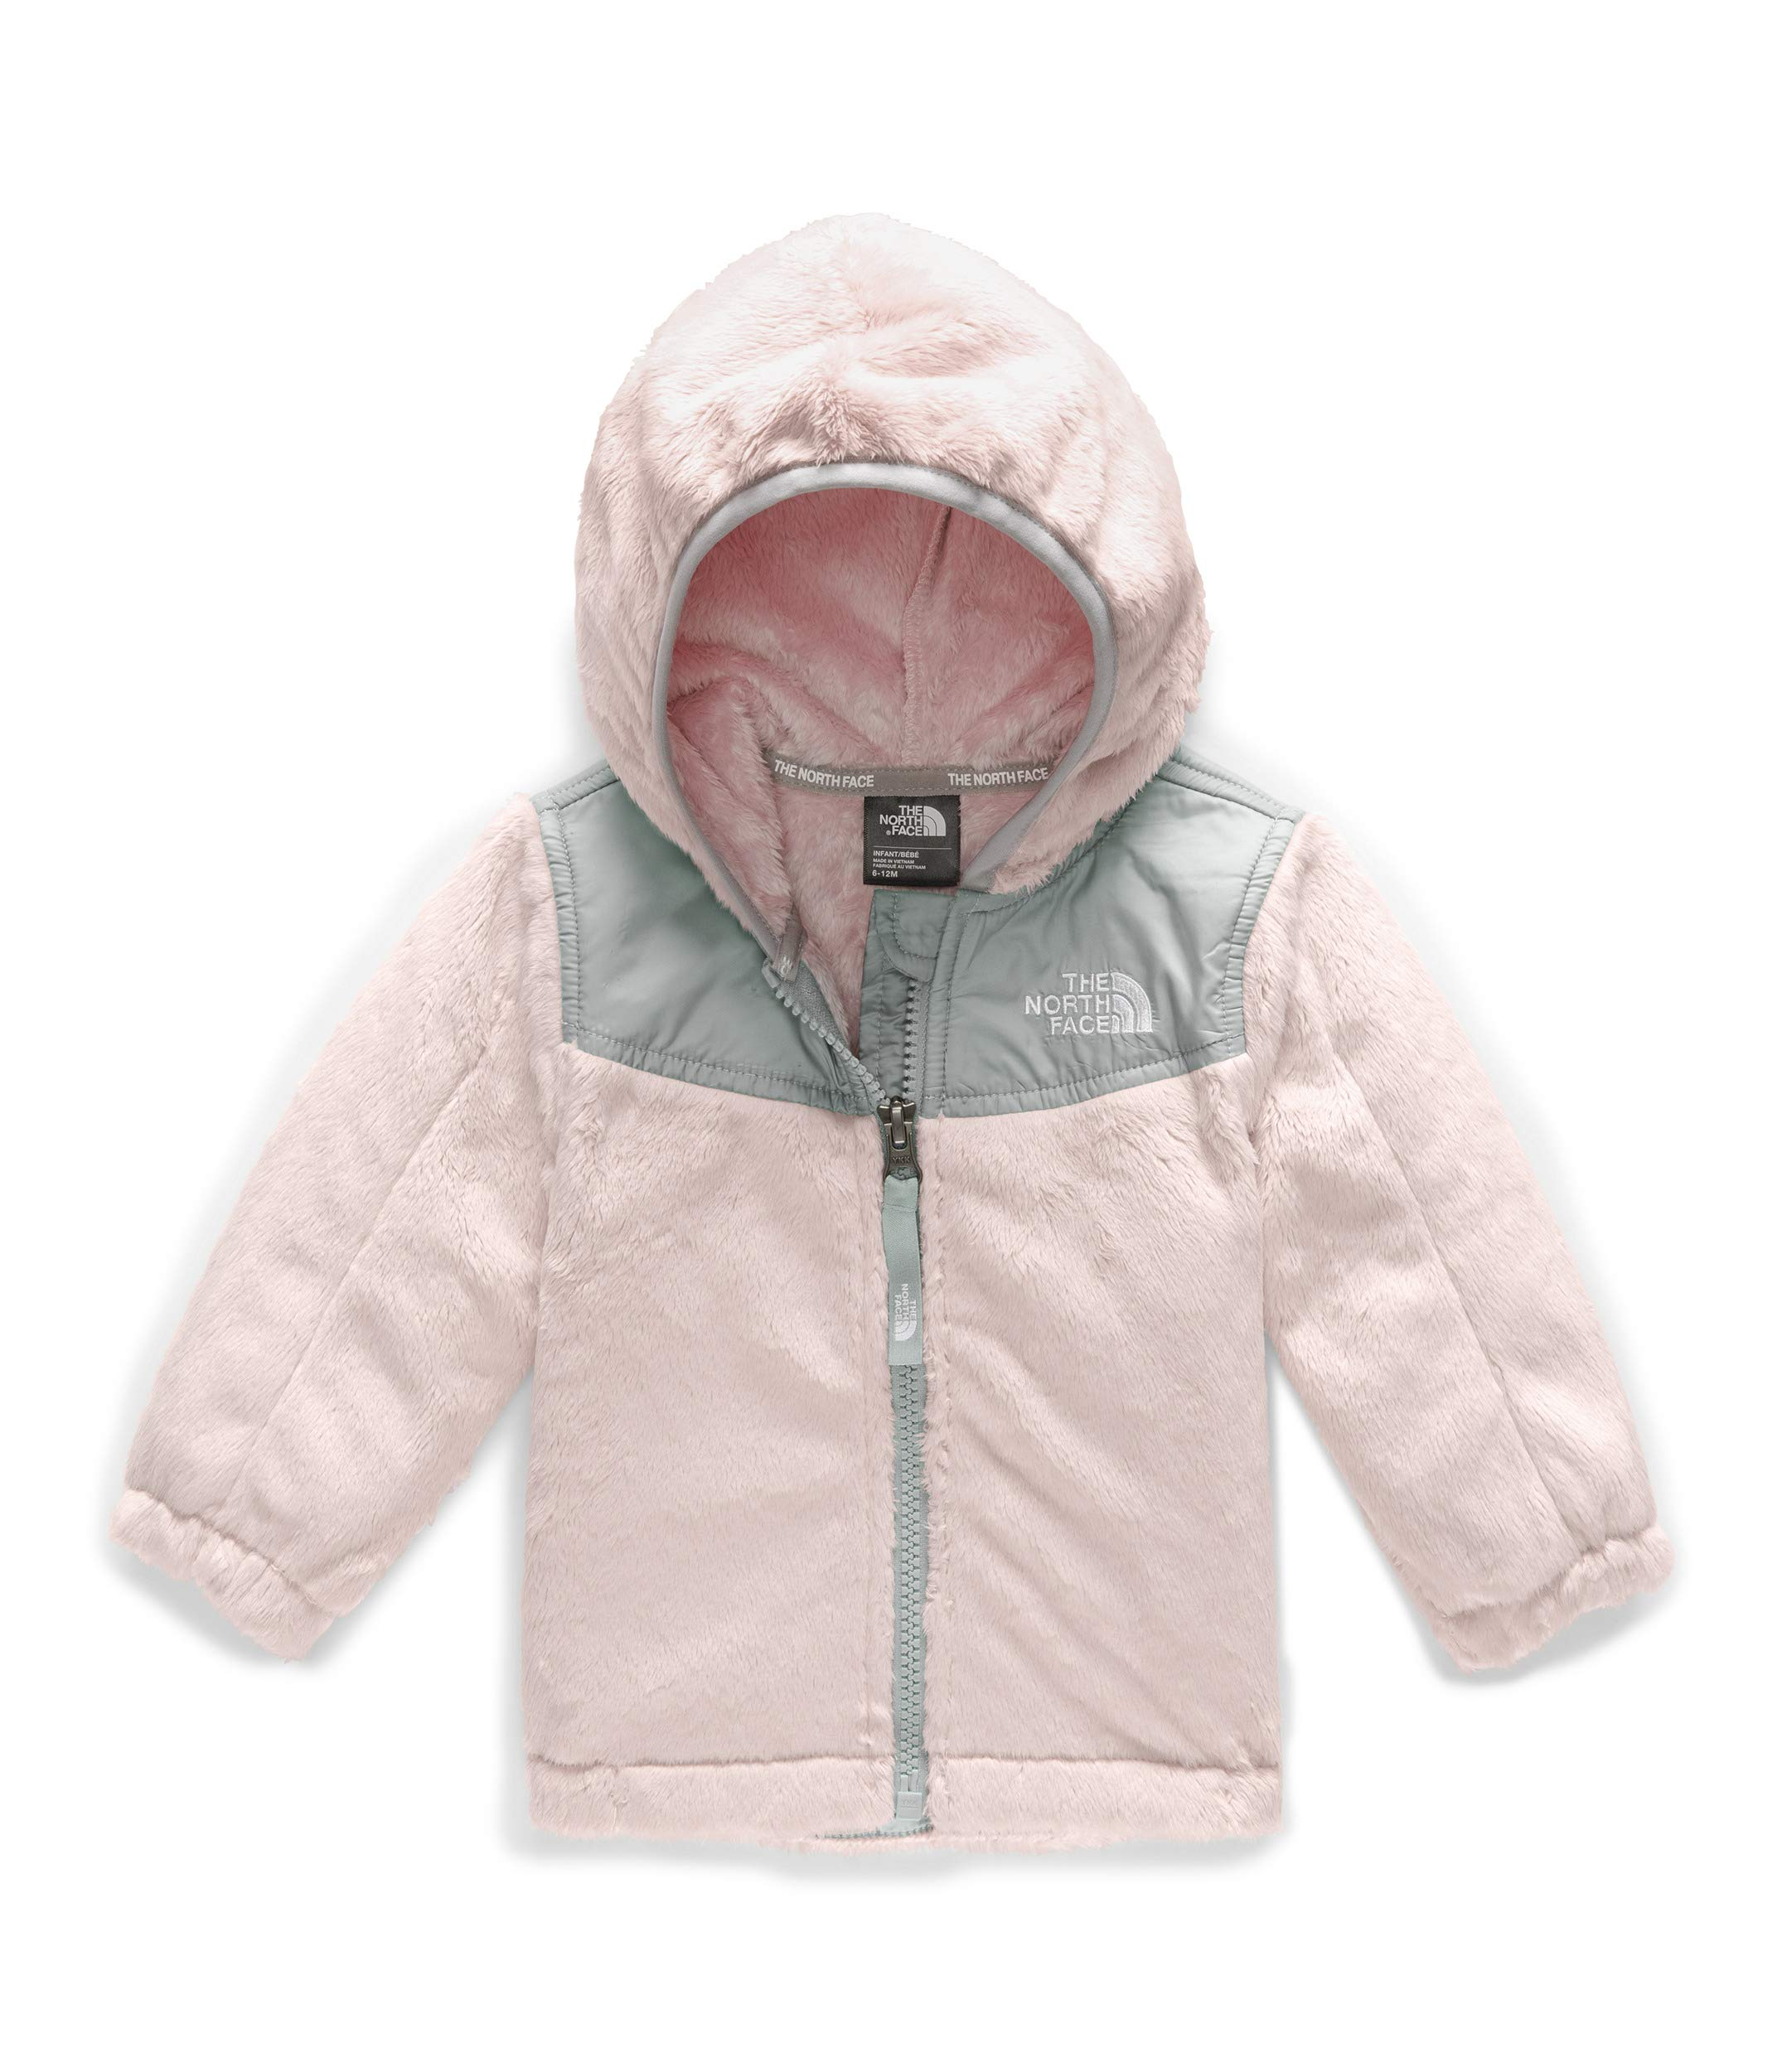 The North Face Kids Baby Girl's OSO Hoodie (Infant) Purdy Pink/Meld Grey 12-18 Months